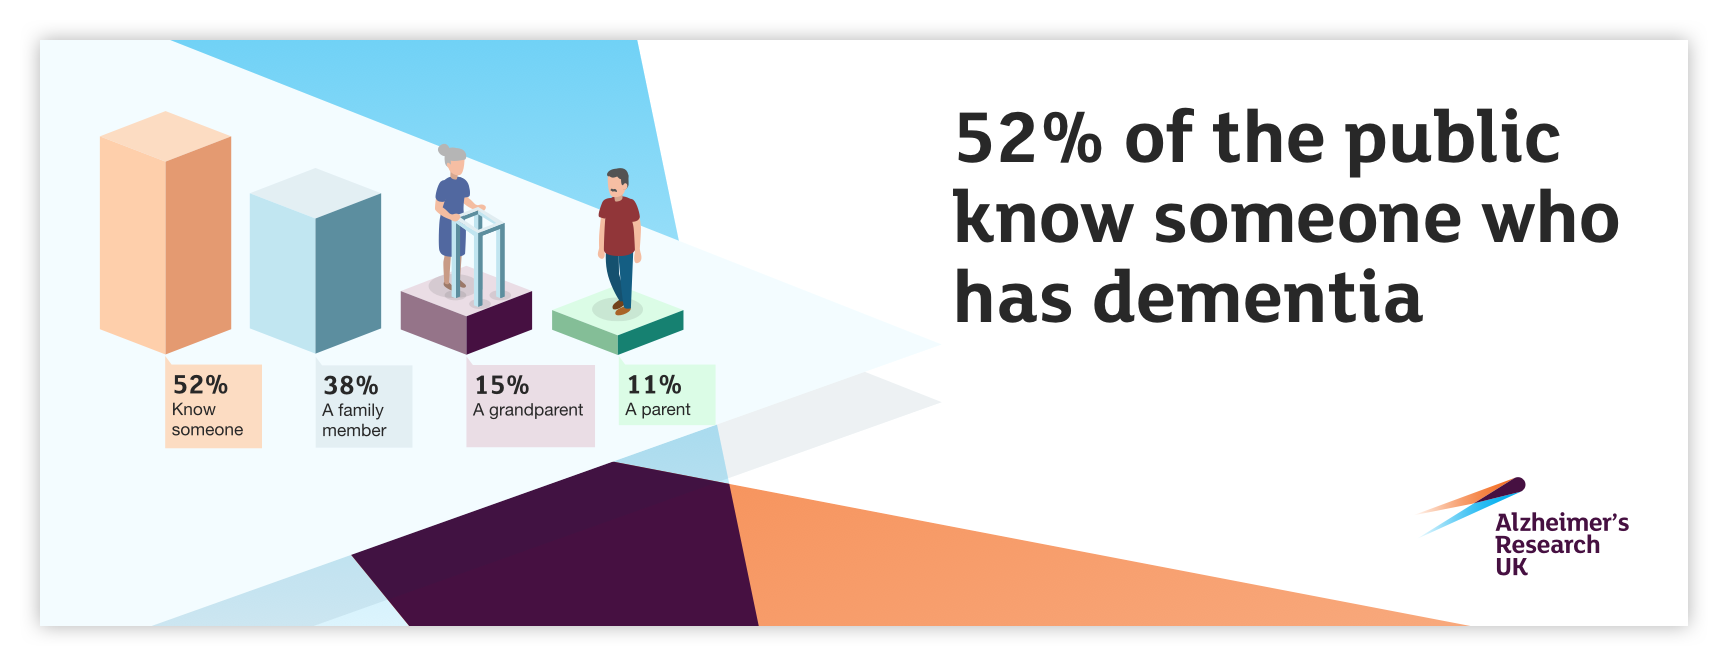 52% of the public know someone who has dementia